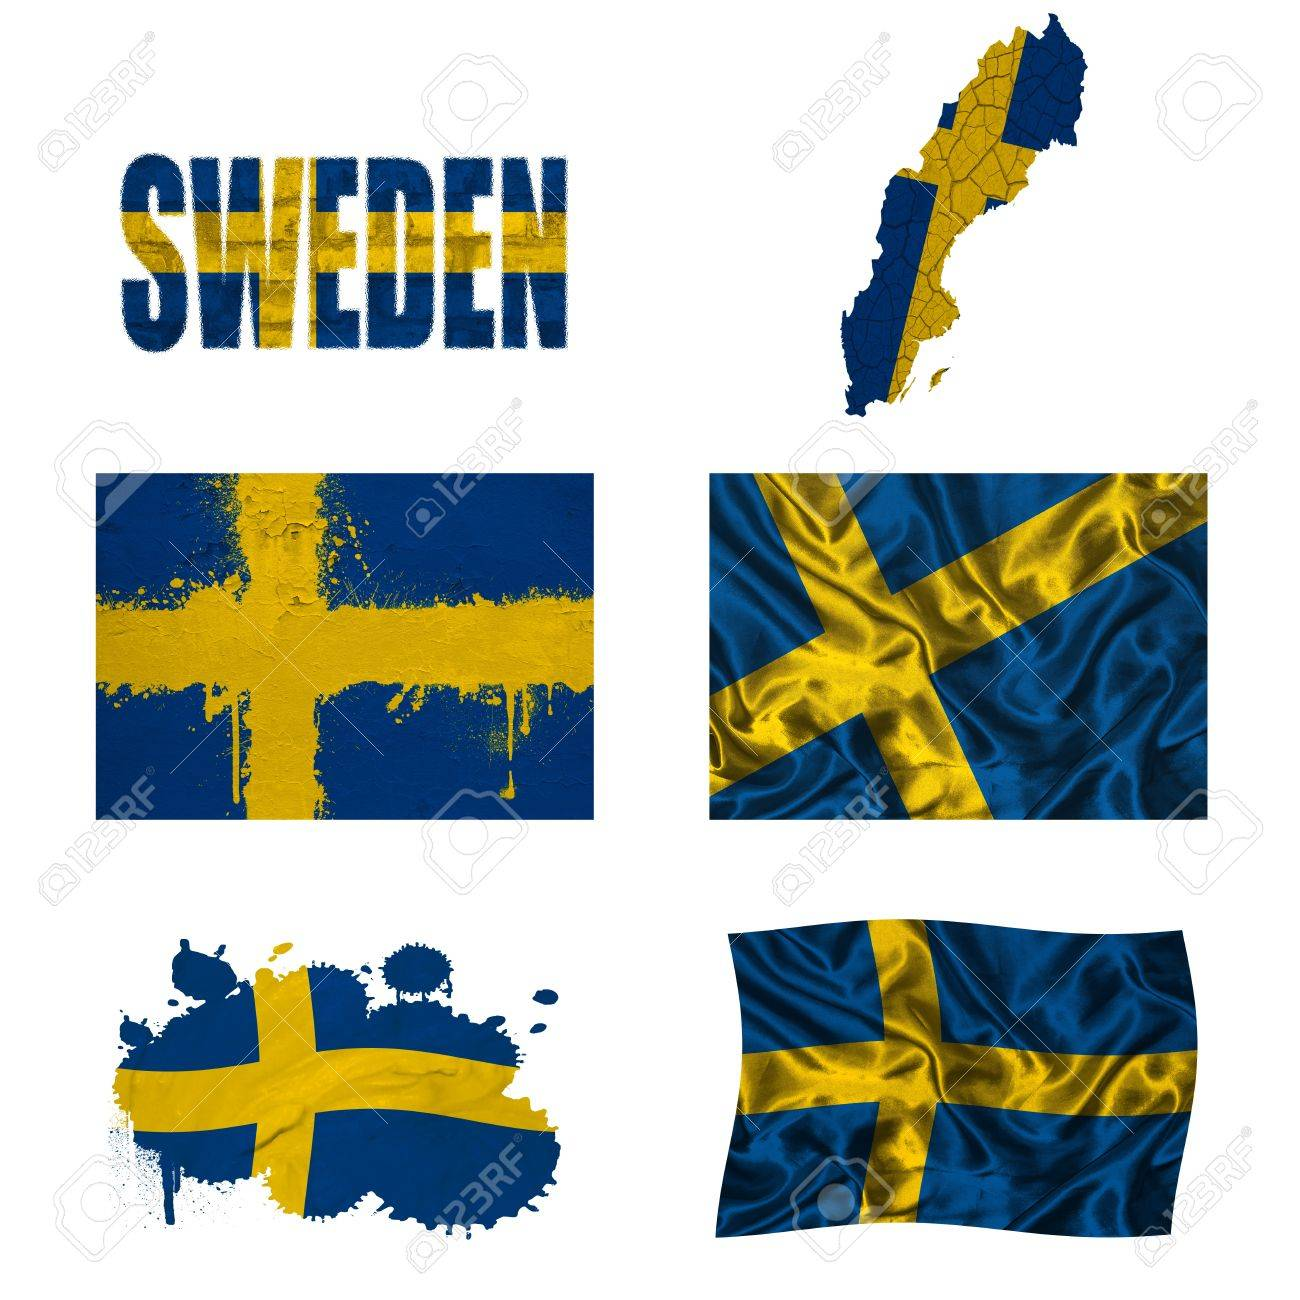 Sweden Flag And Map In Different Styles In Different Textures - Sweden map flag